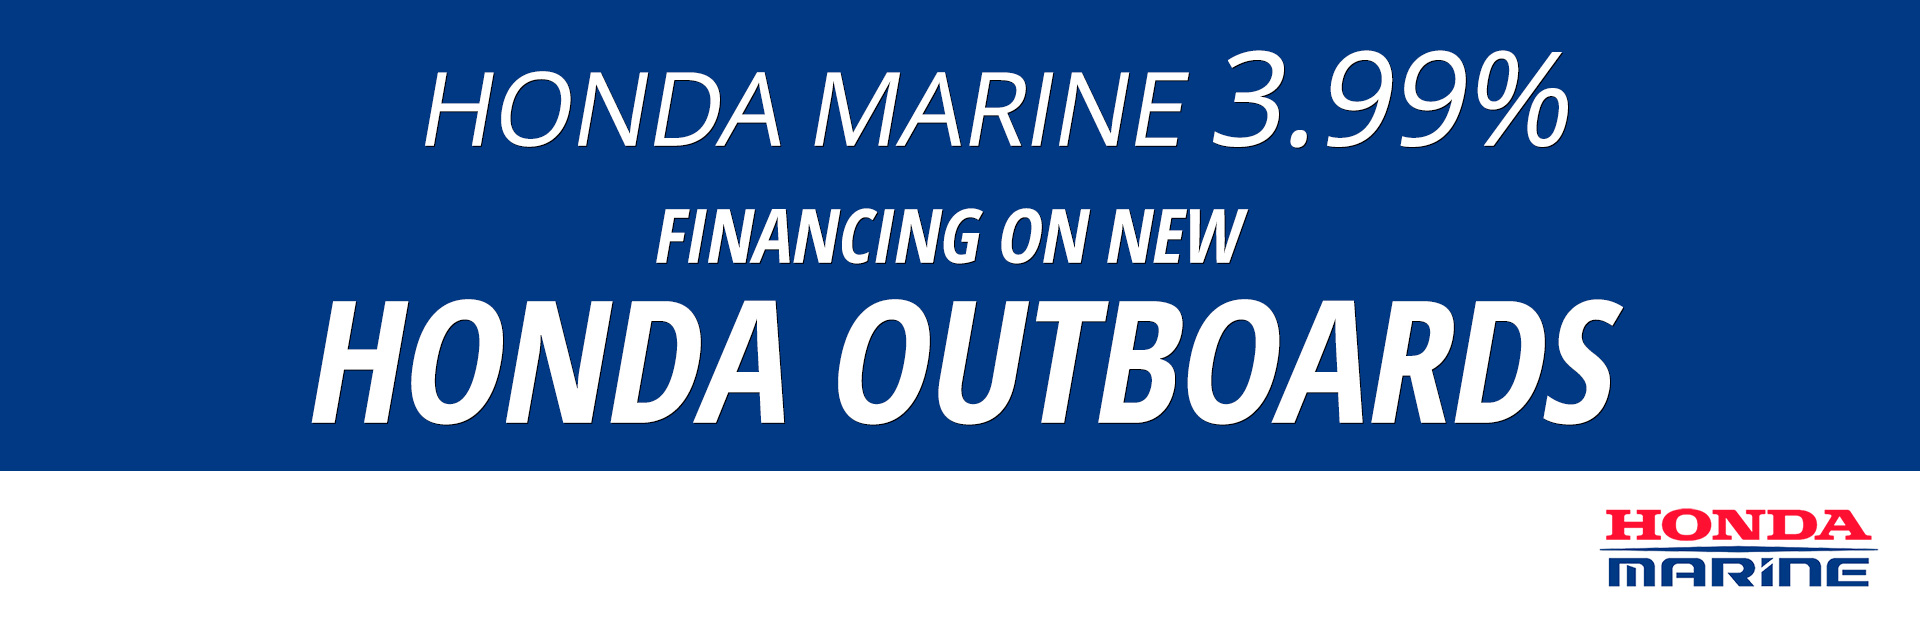 Honda Marine: Honda Marine 3.99% Financing on New Honda Outboard